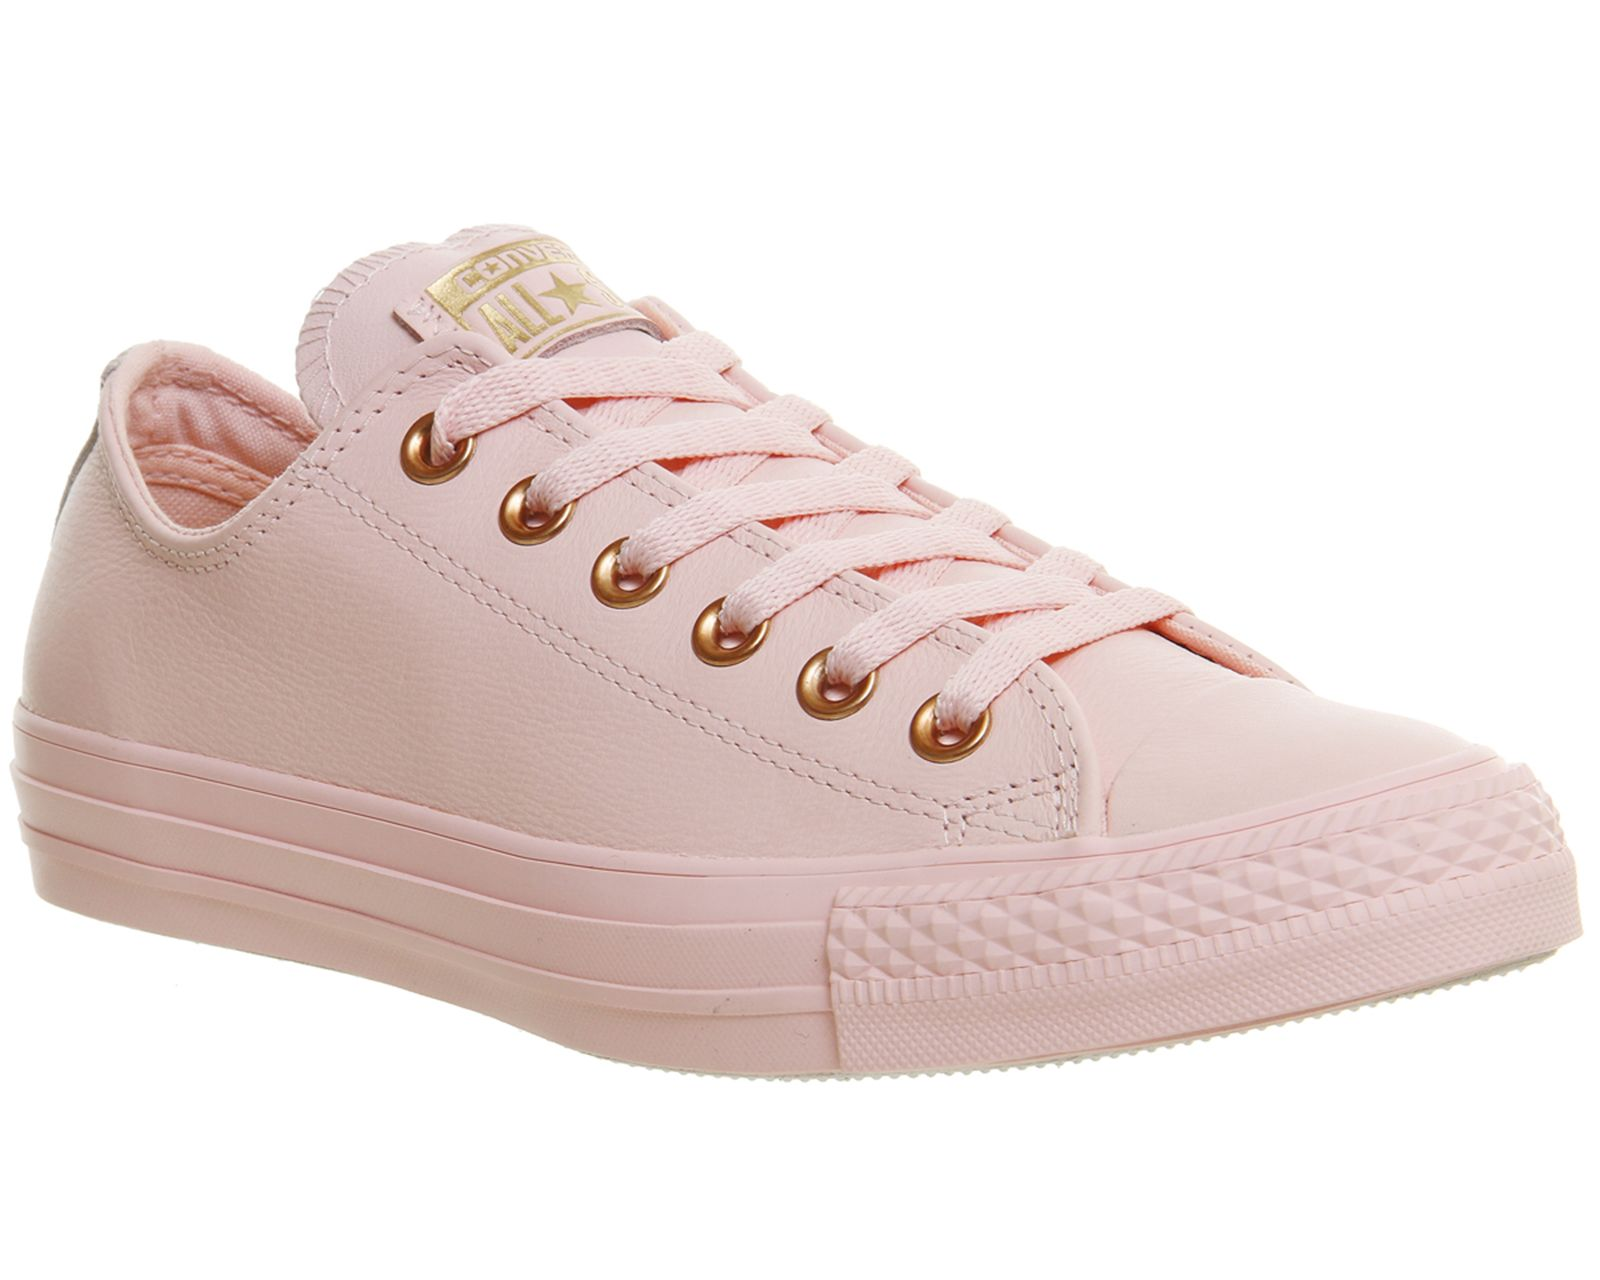 Converse All Star Low Leather Vapour Pink Rose Gold Trainers